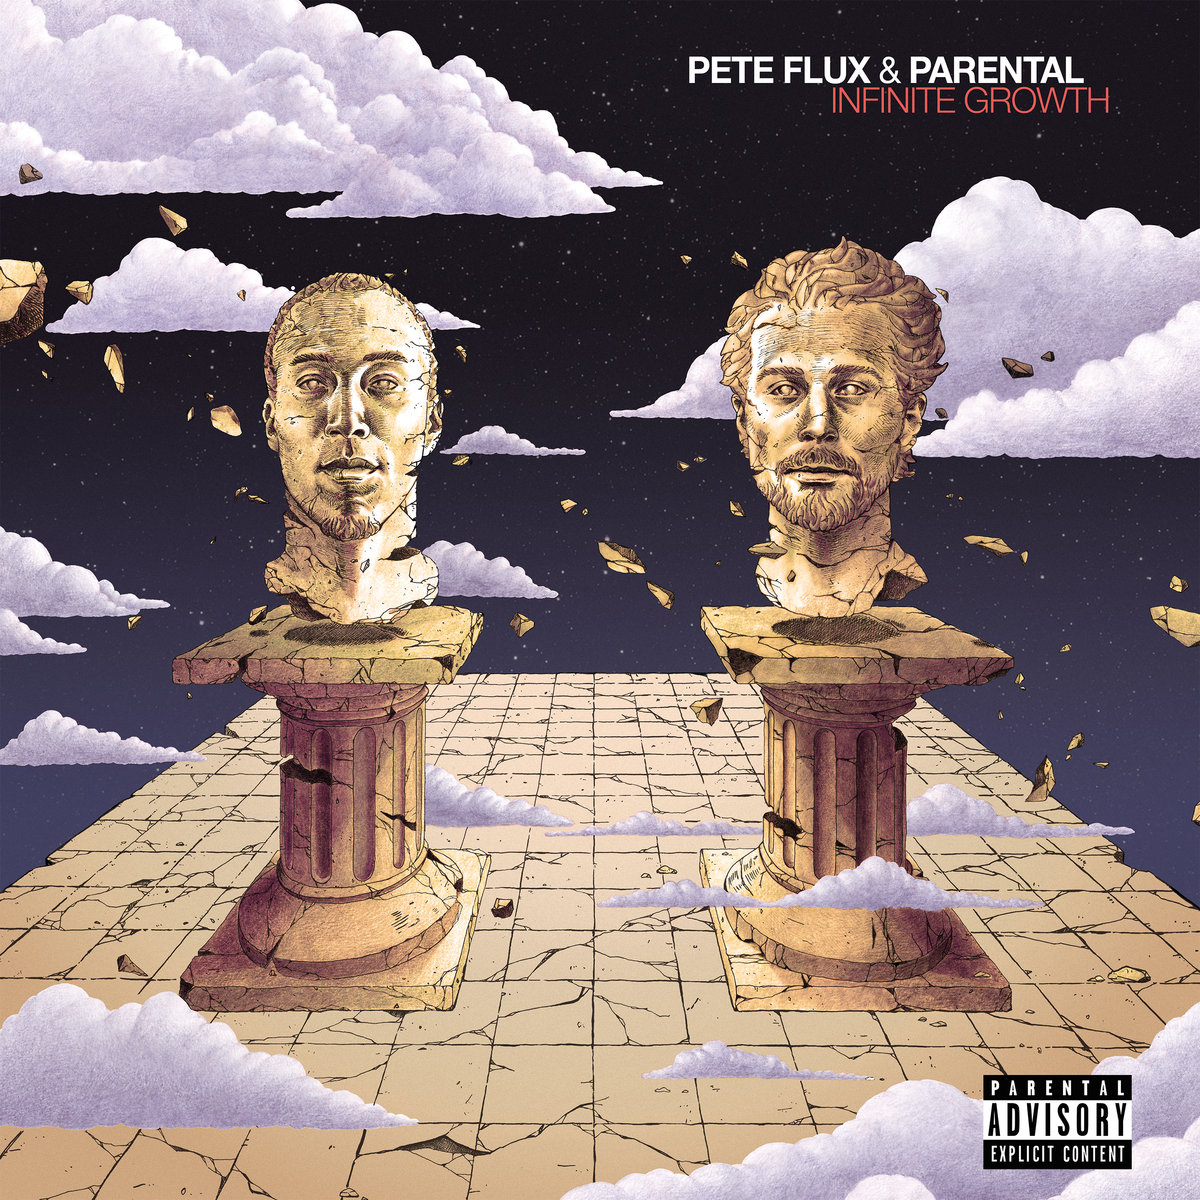 Pete Flux & Parental - Infinite Growth